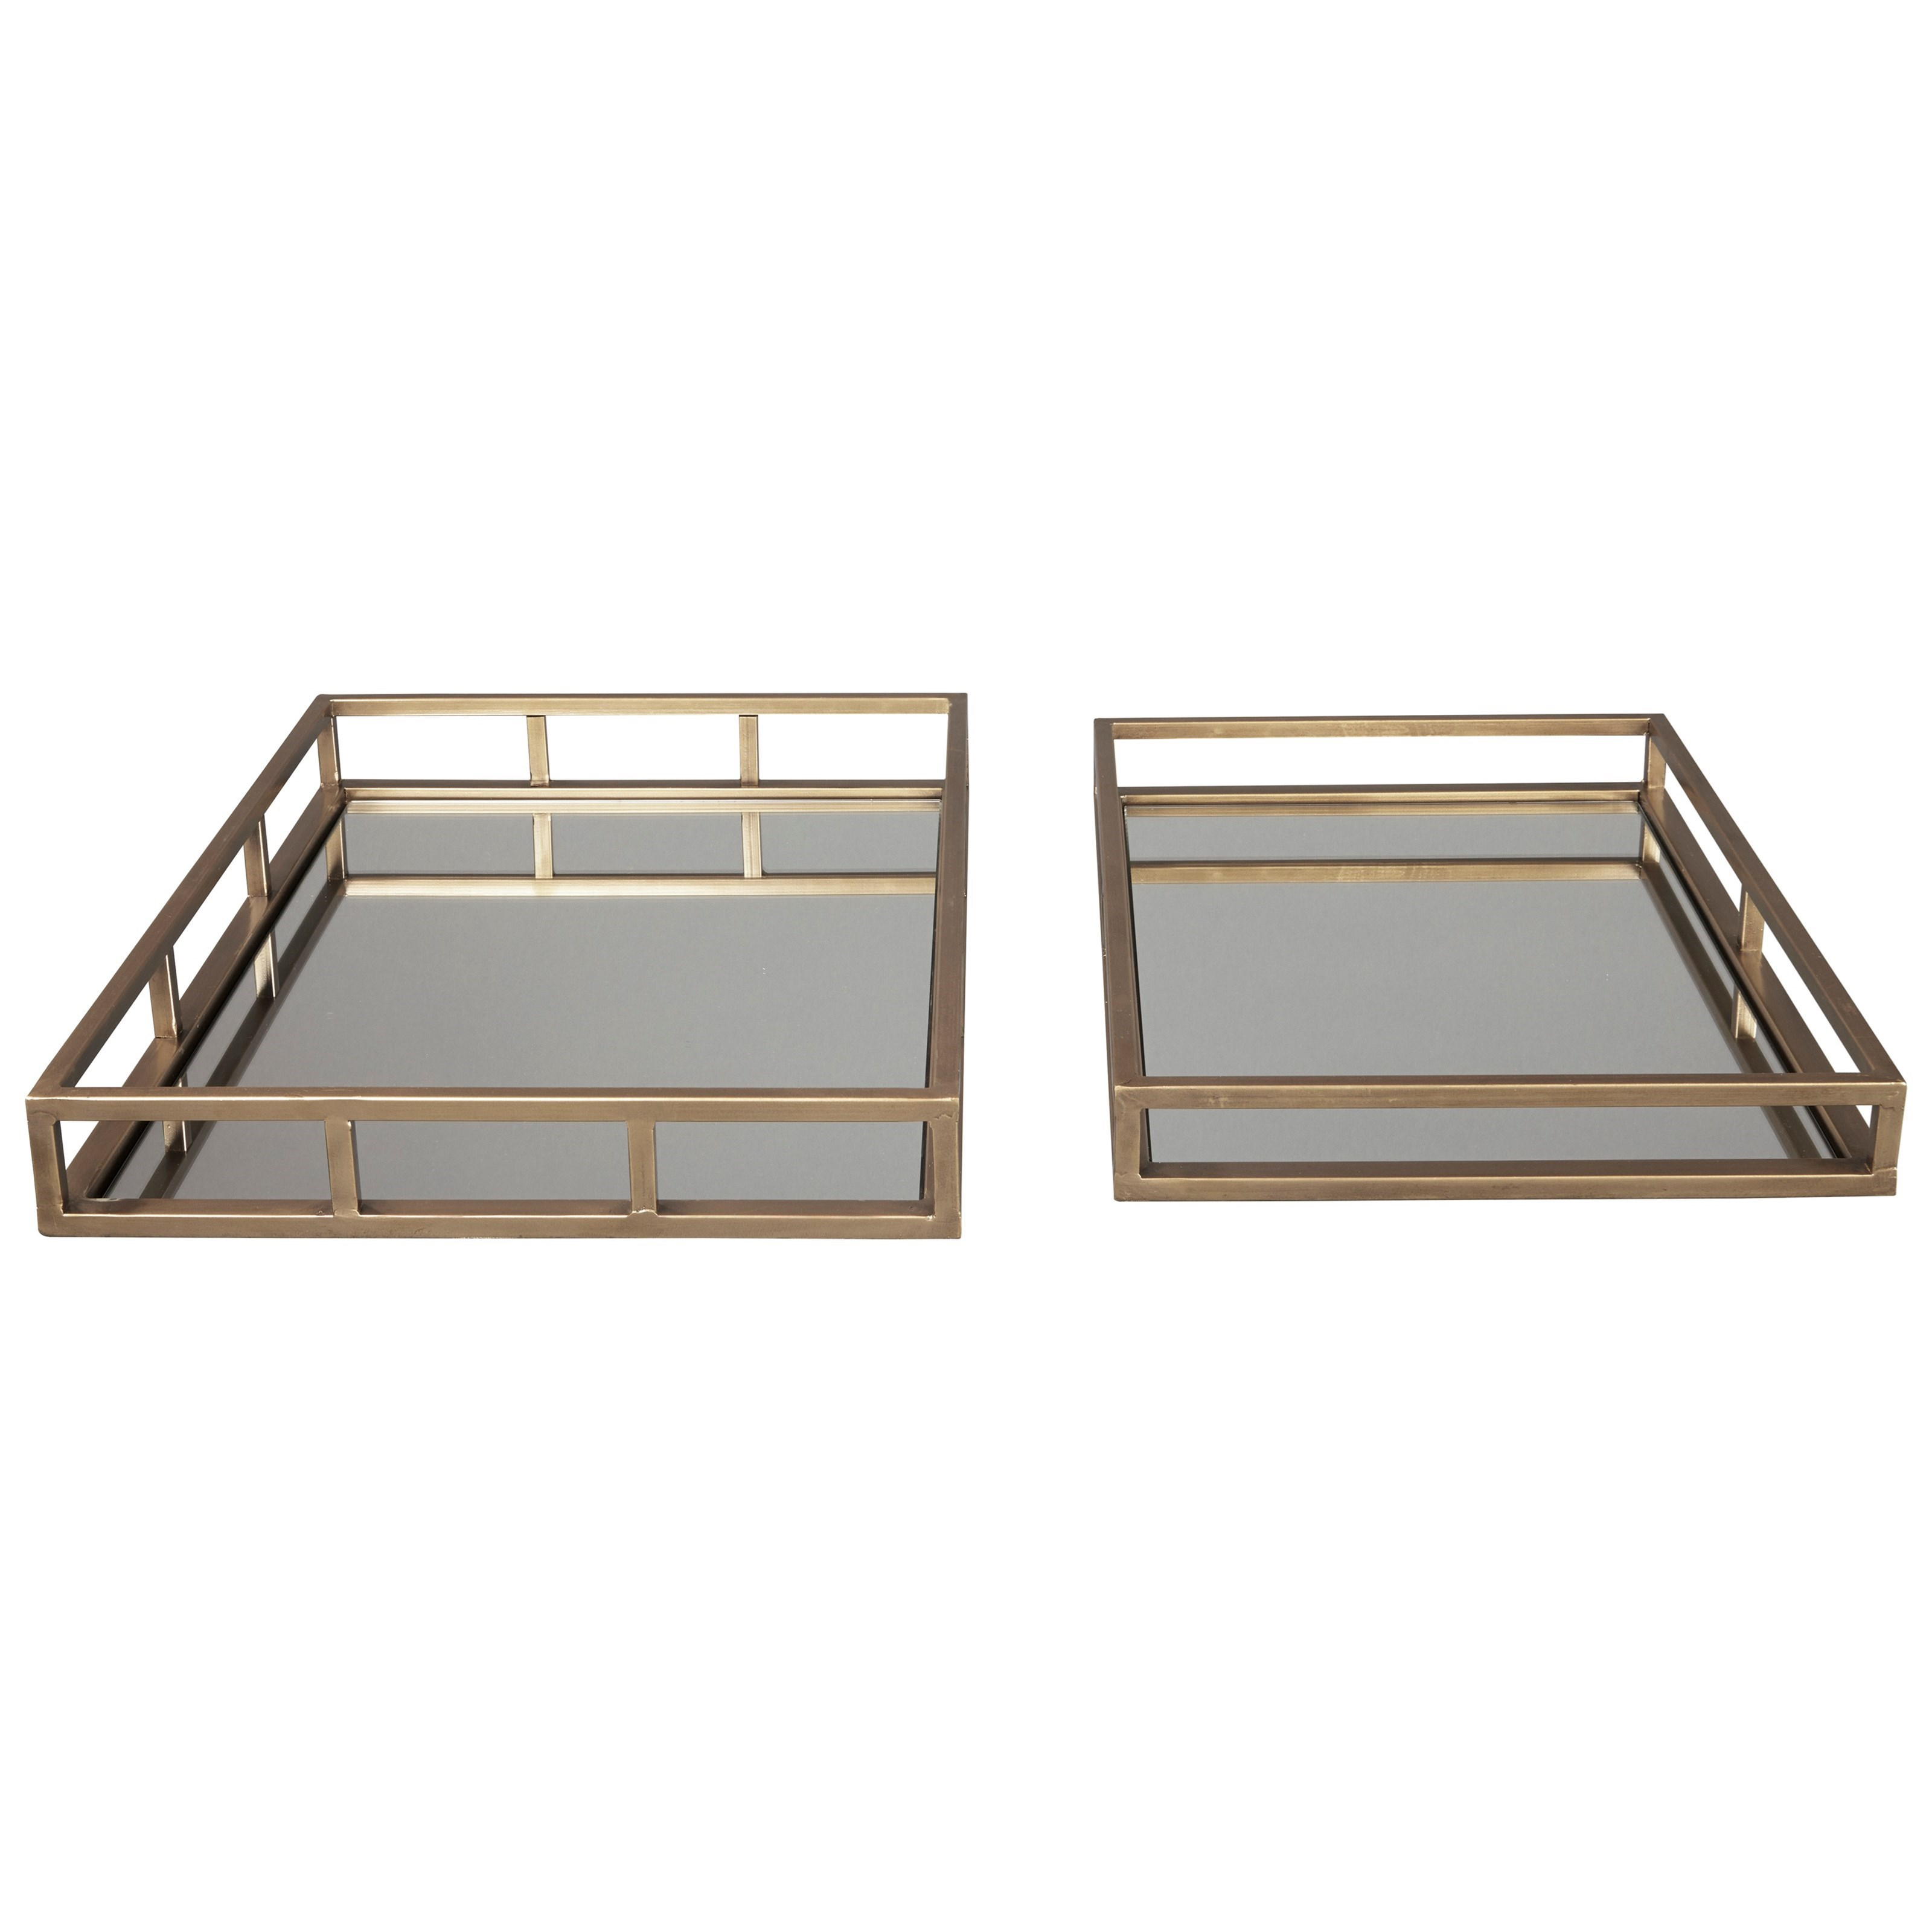 Signature Design by Ashley Accents Ocie Antique Gold Finish Trays (Set of 2) - Item Number: A2000211T